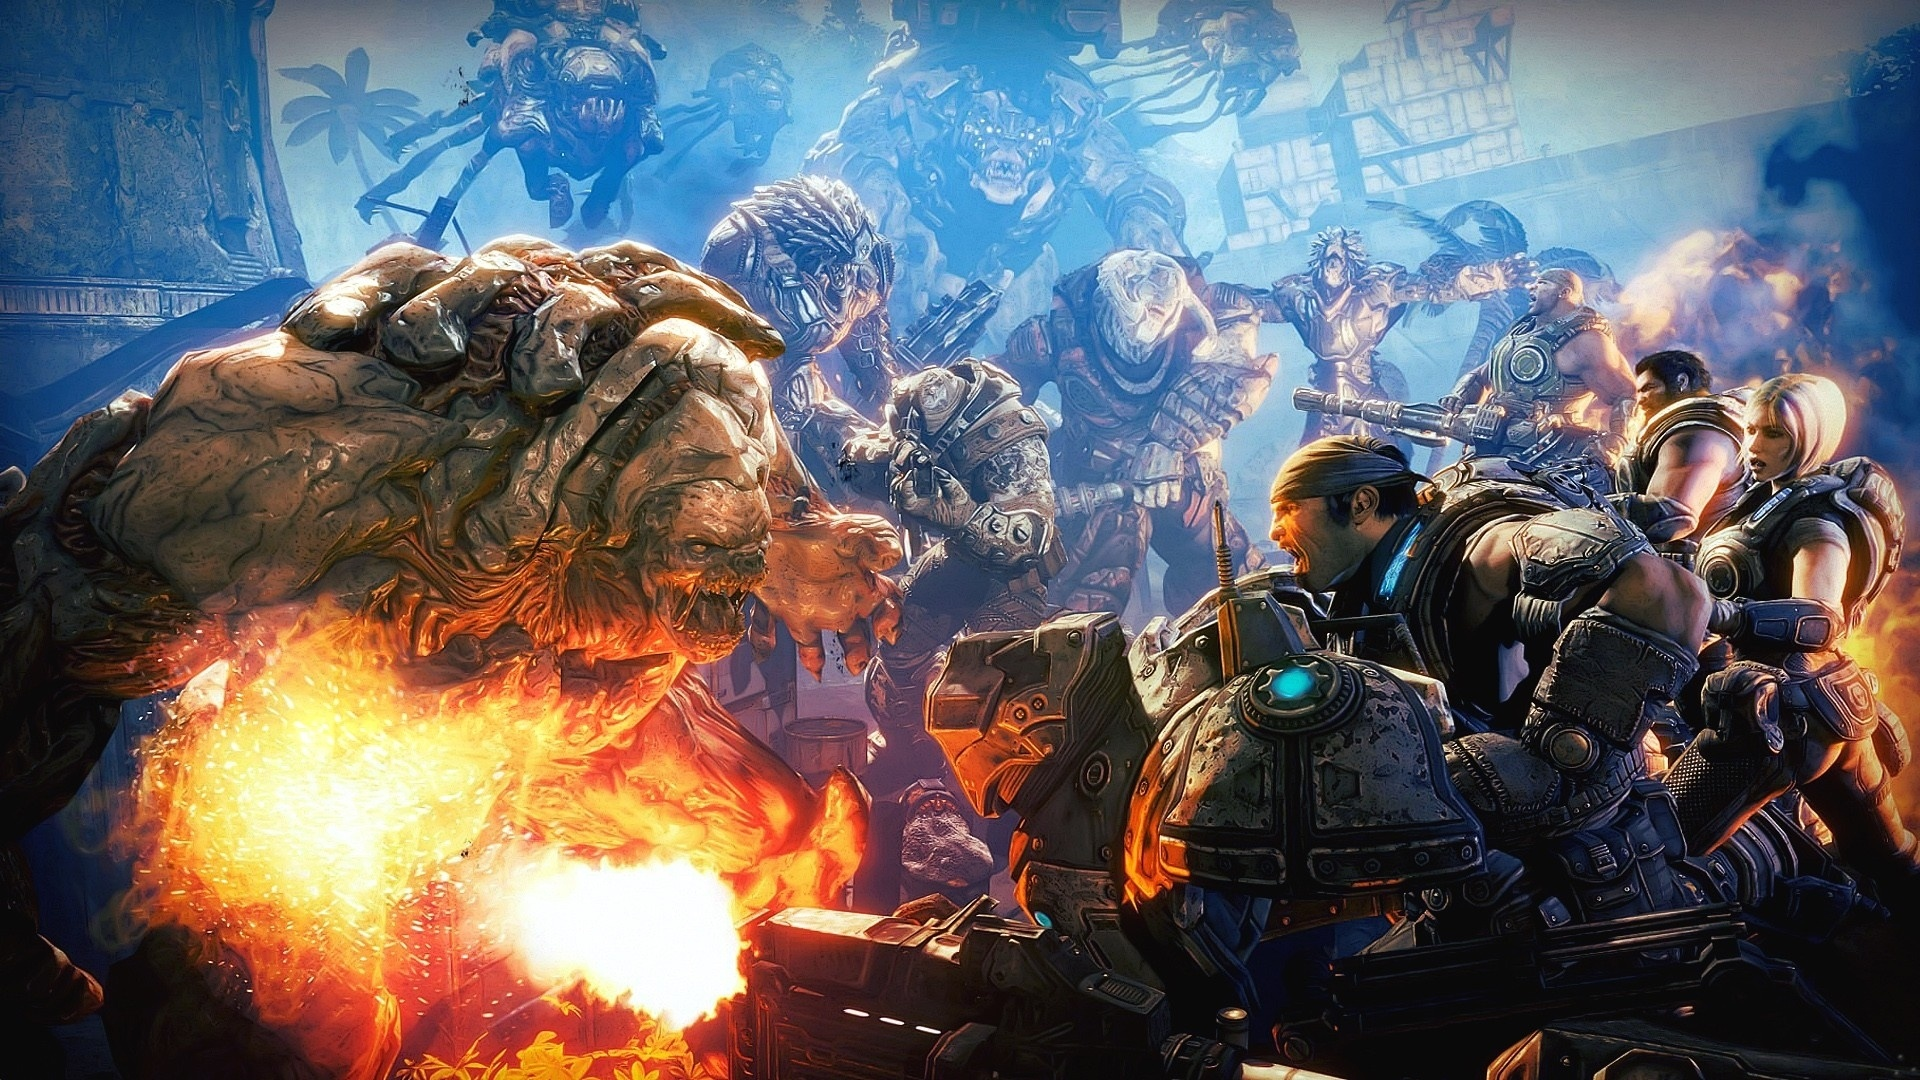 Gears Of War free pic